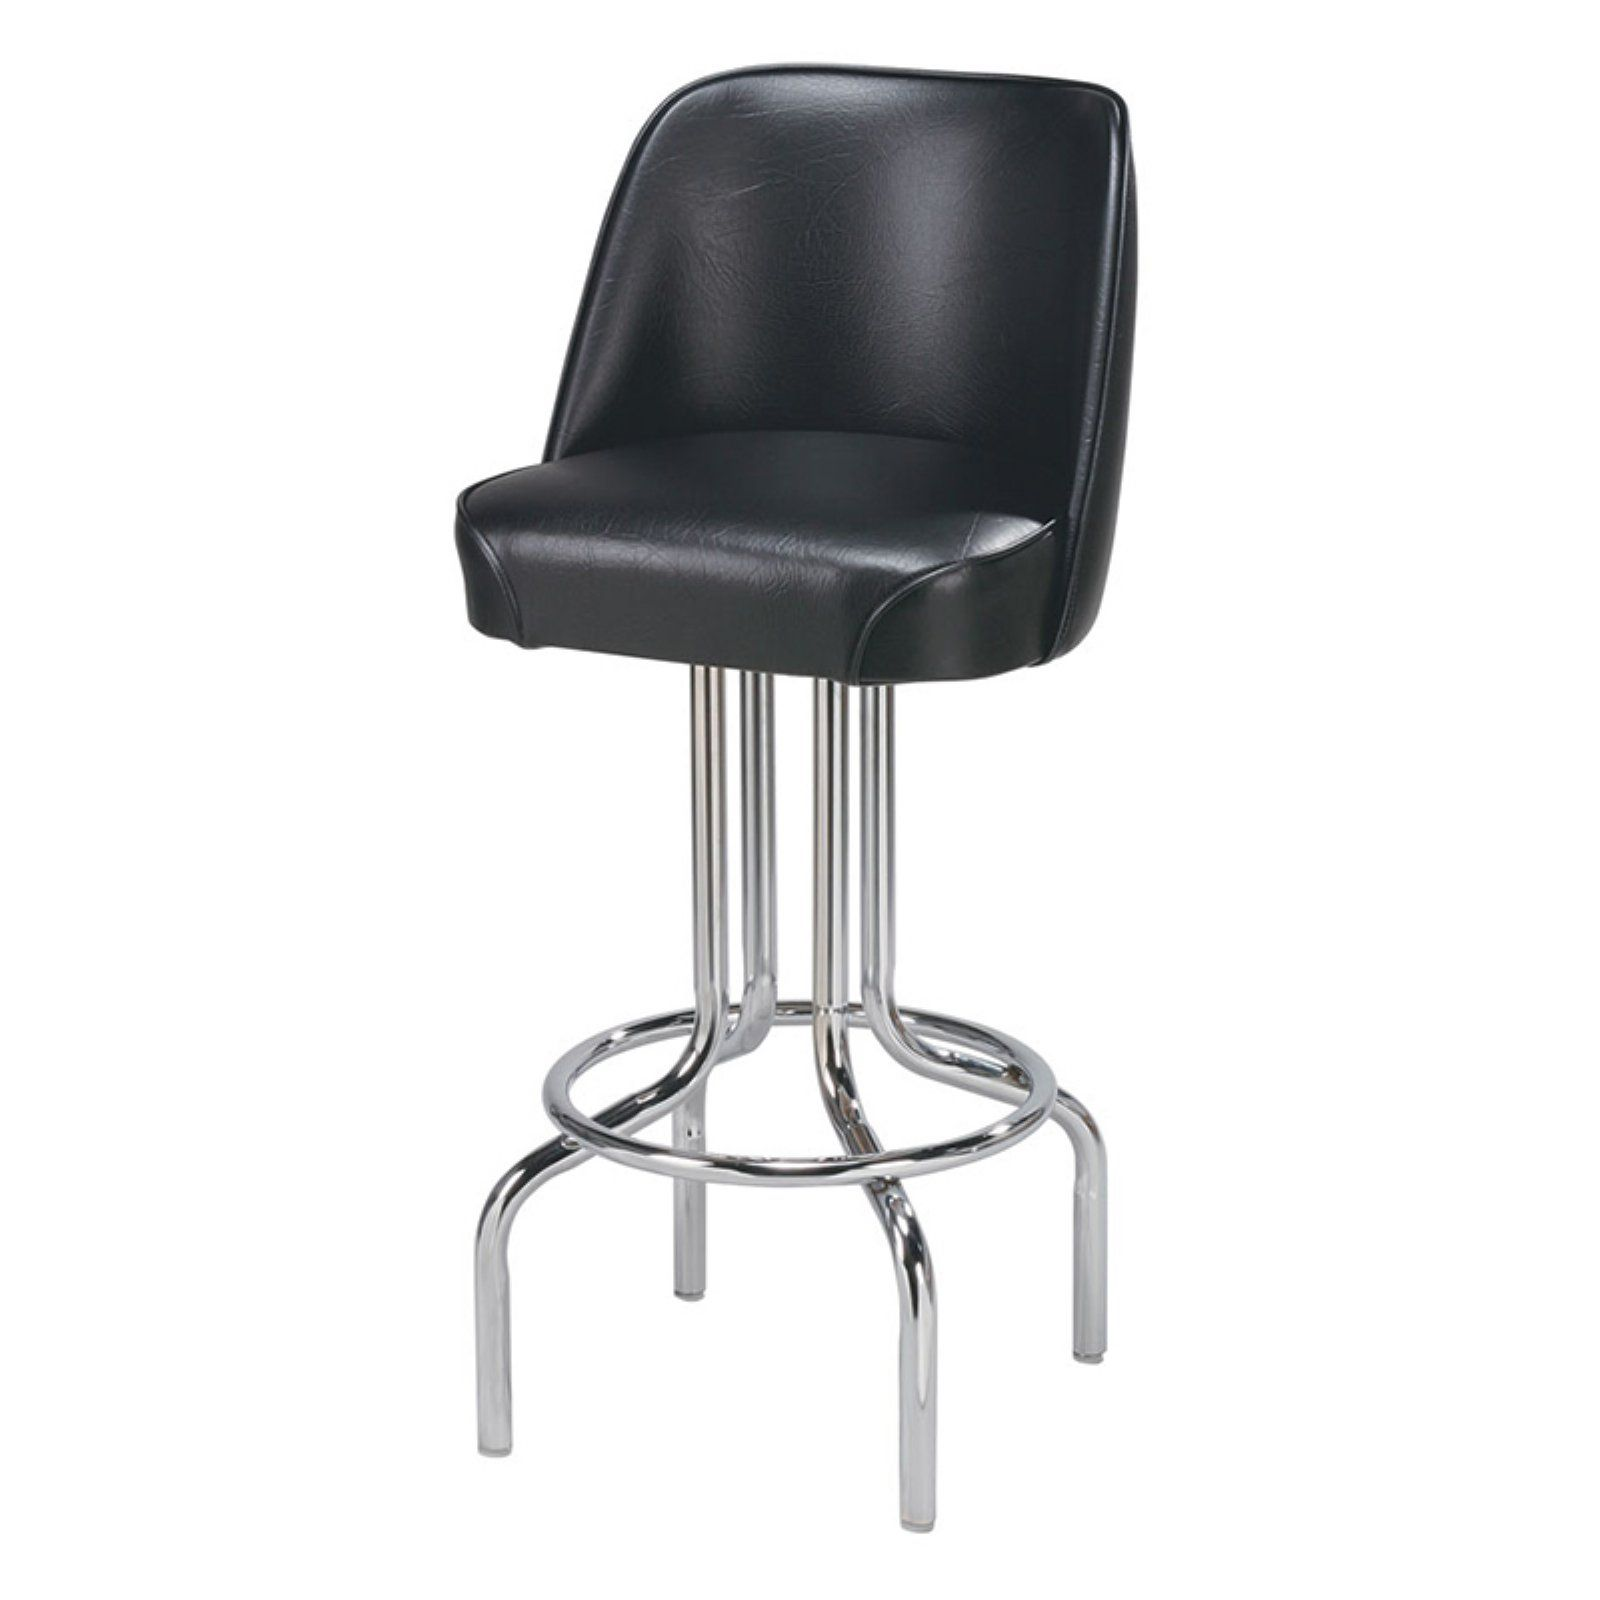 Swell Regal Bucket Seat 26 In Chrome Counter Stool Regal Gold In Bralicious Painted Fabric Chair Ideas Braliciousco